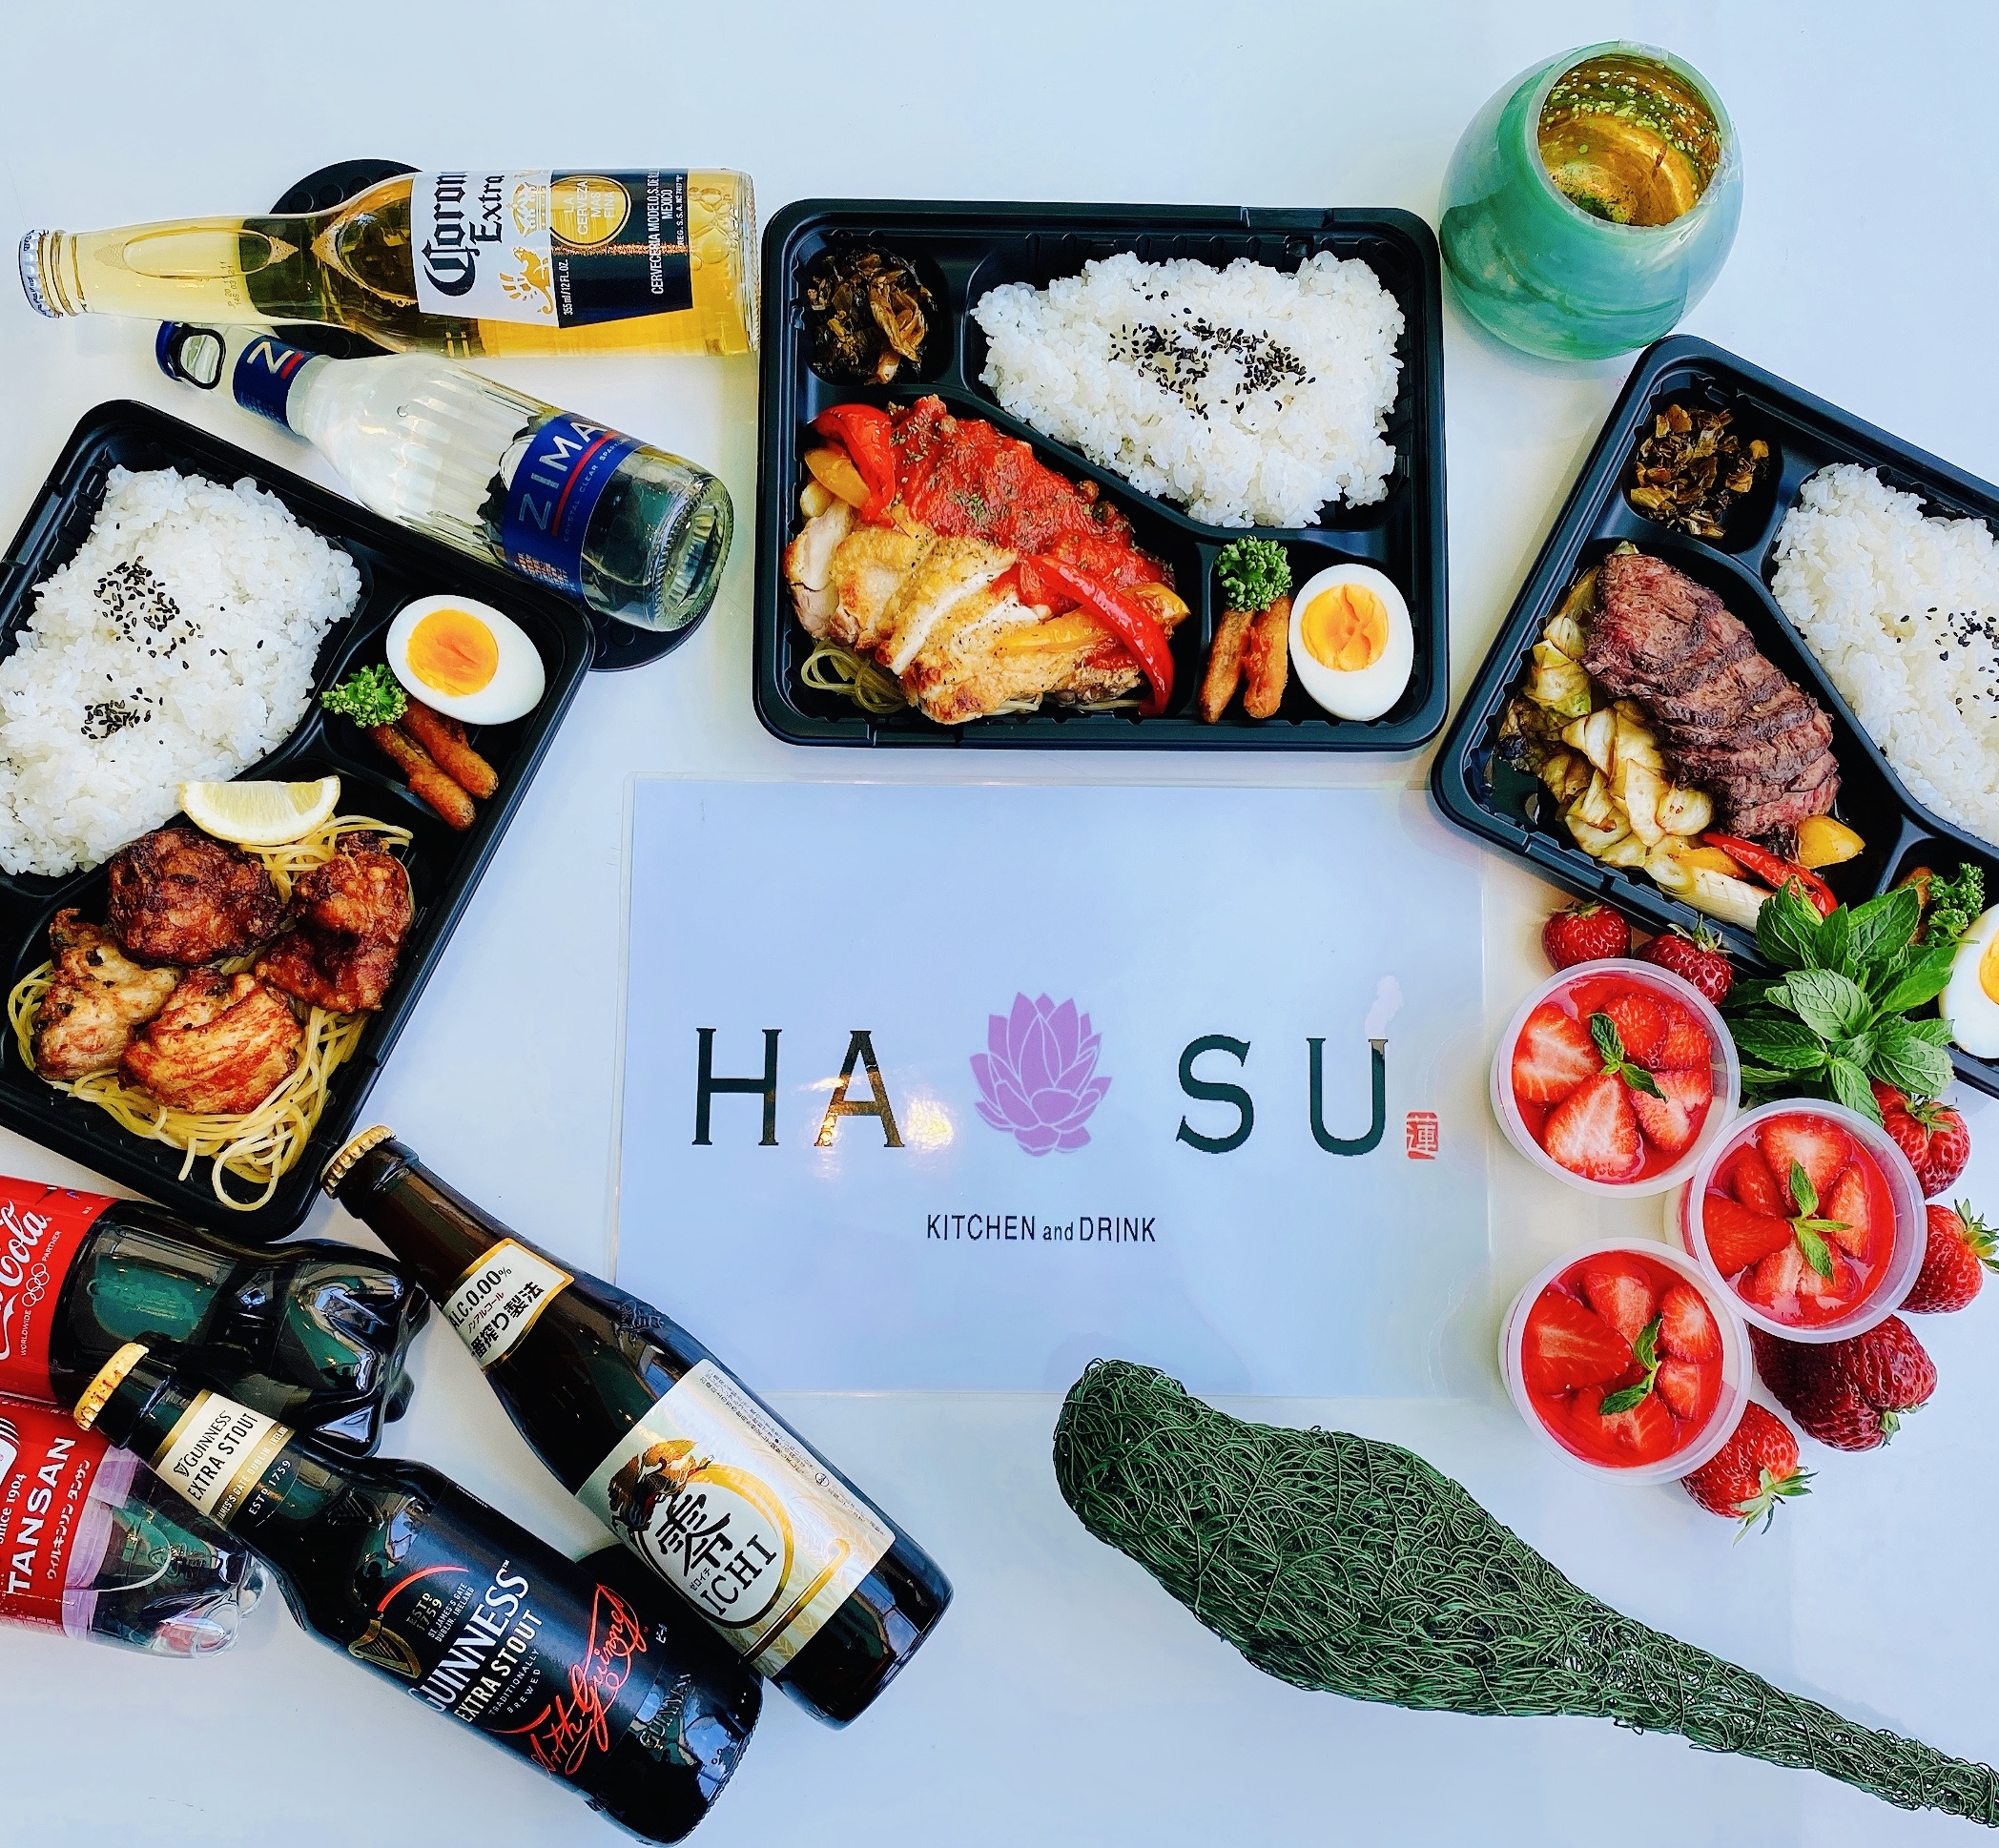 HASU KITCHEN and DRINKS